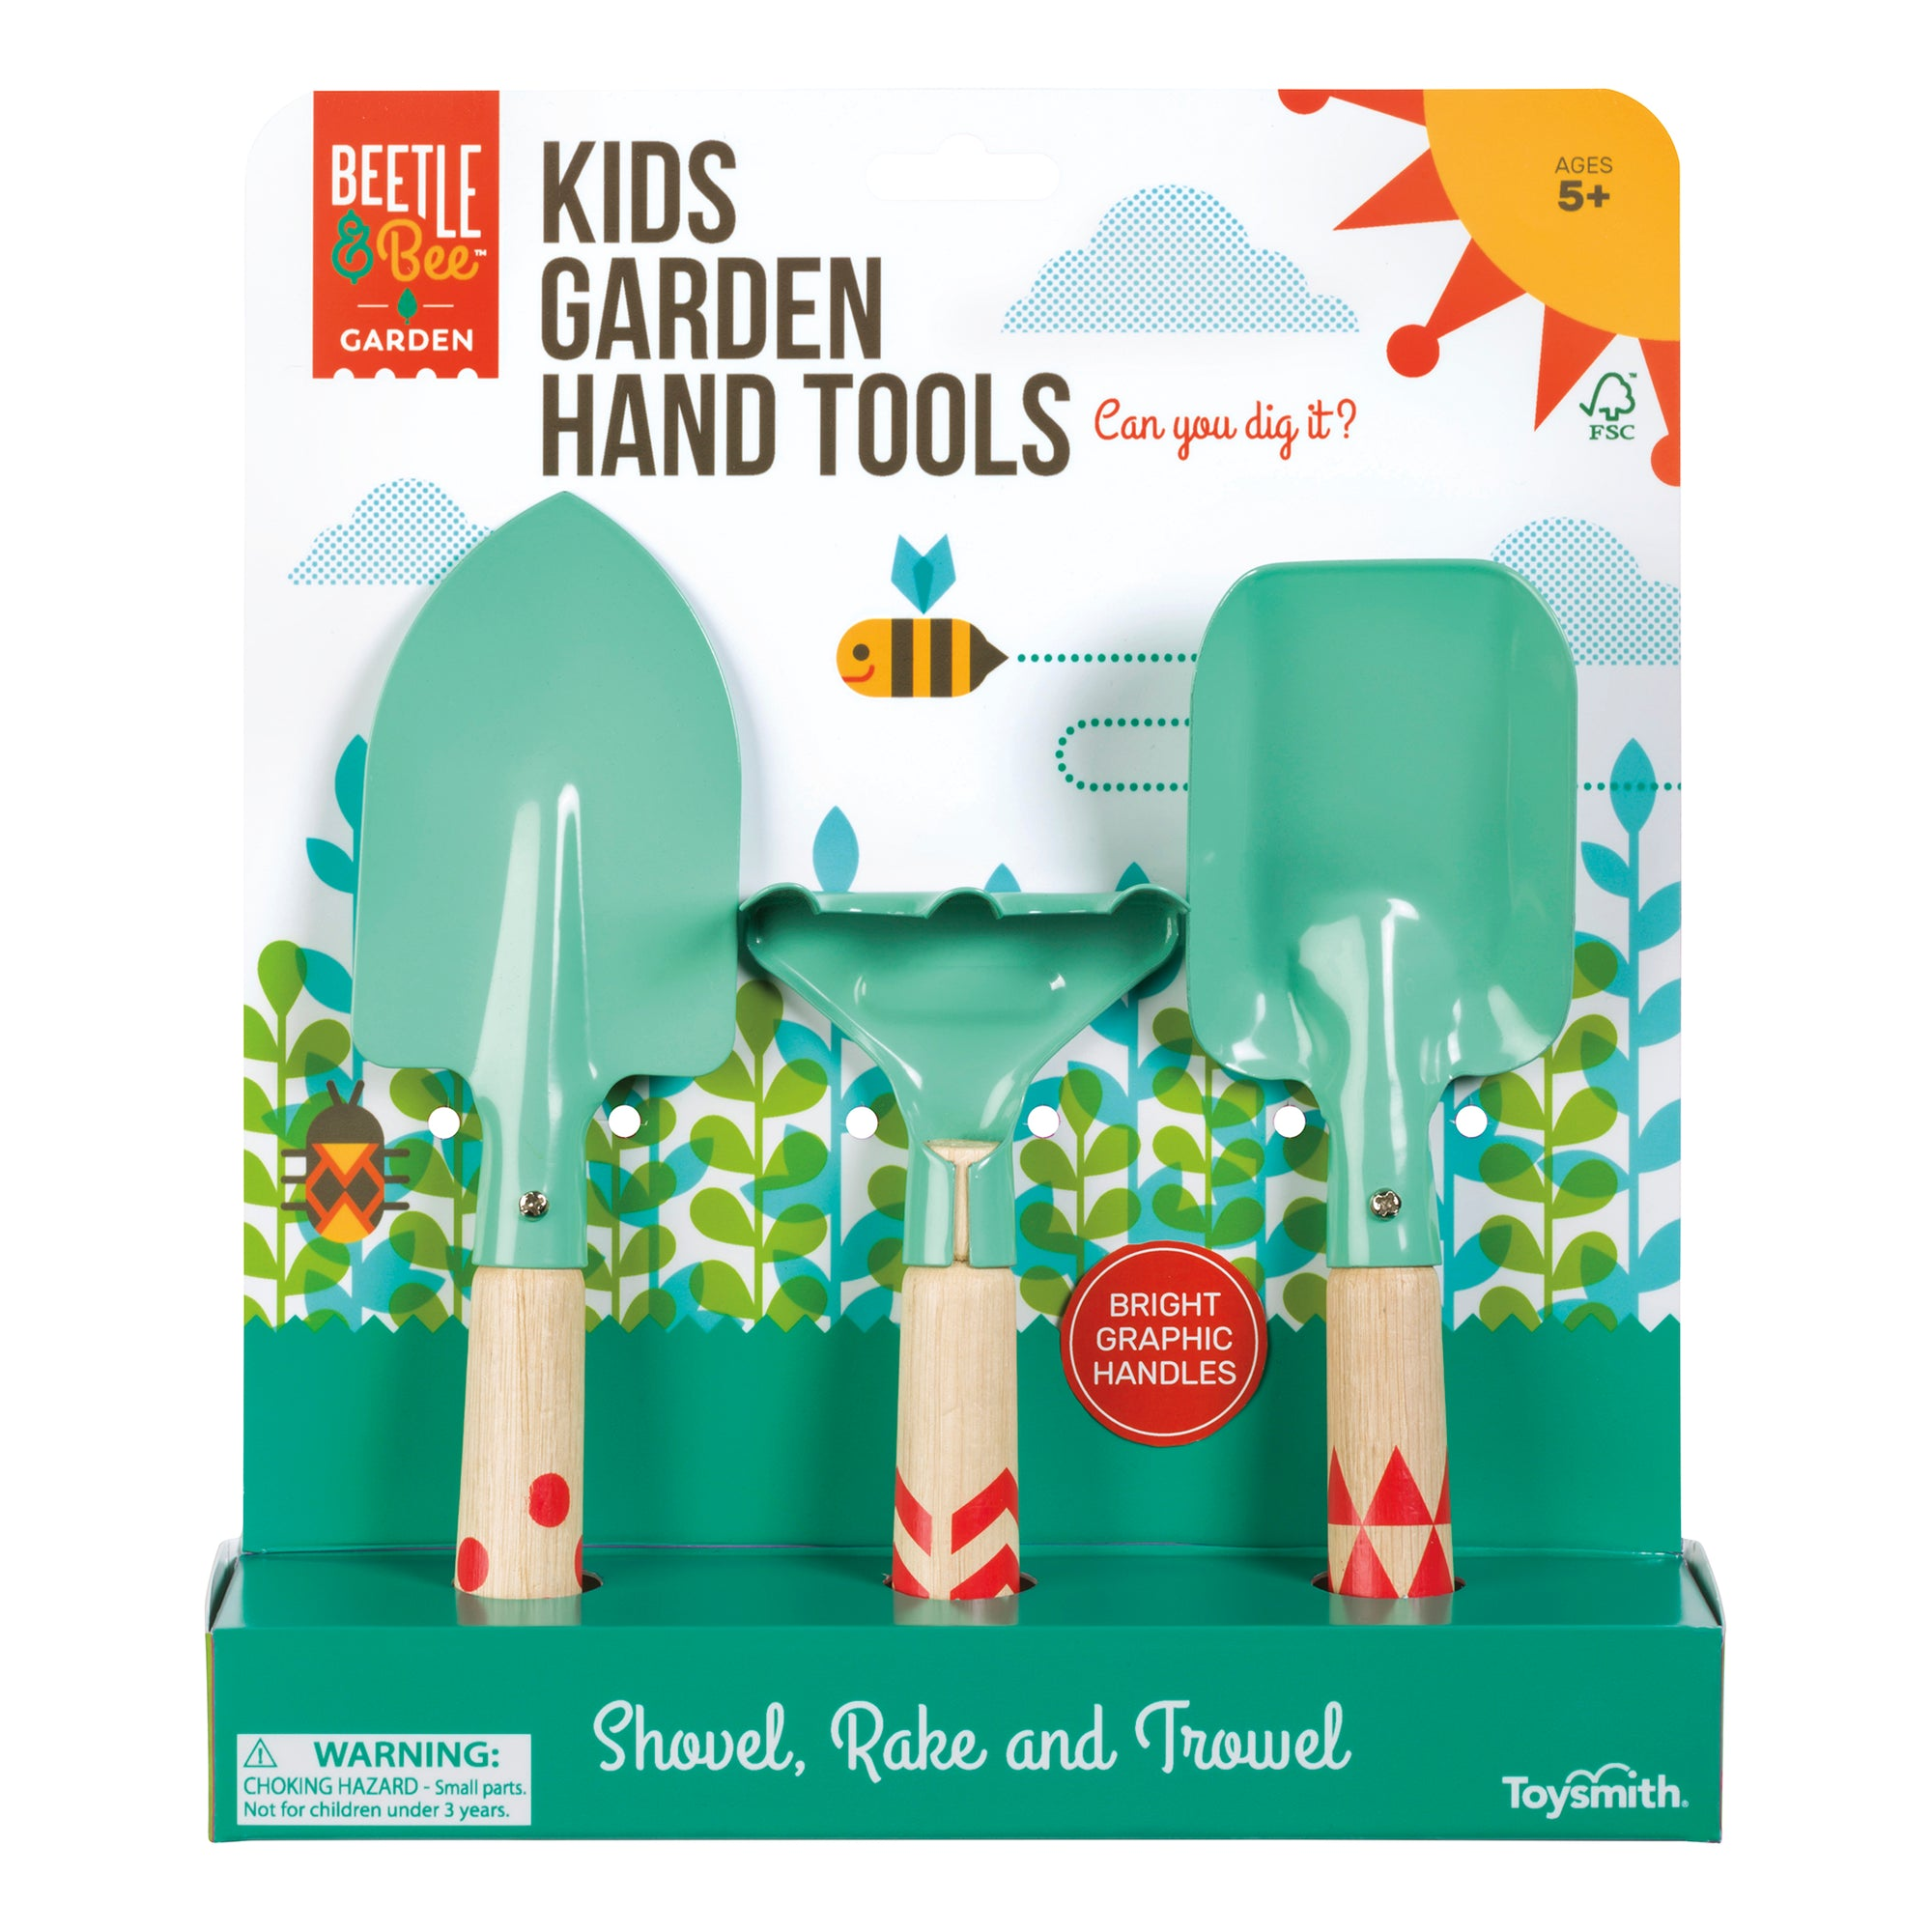 Kids Garden Hand Tools | Getty Store